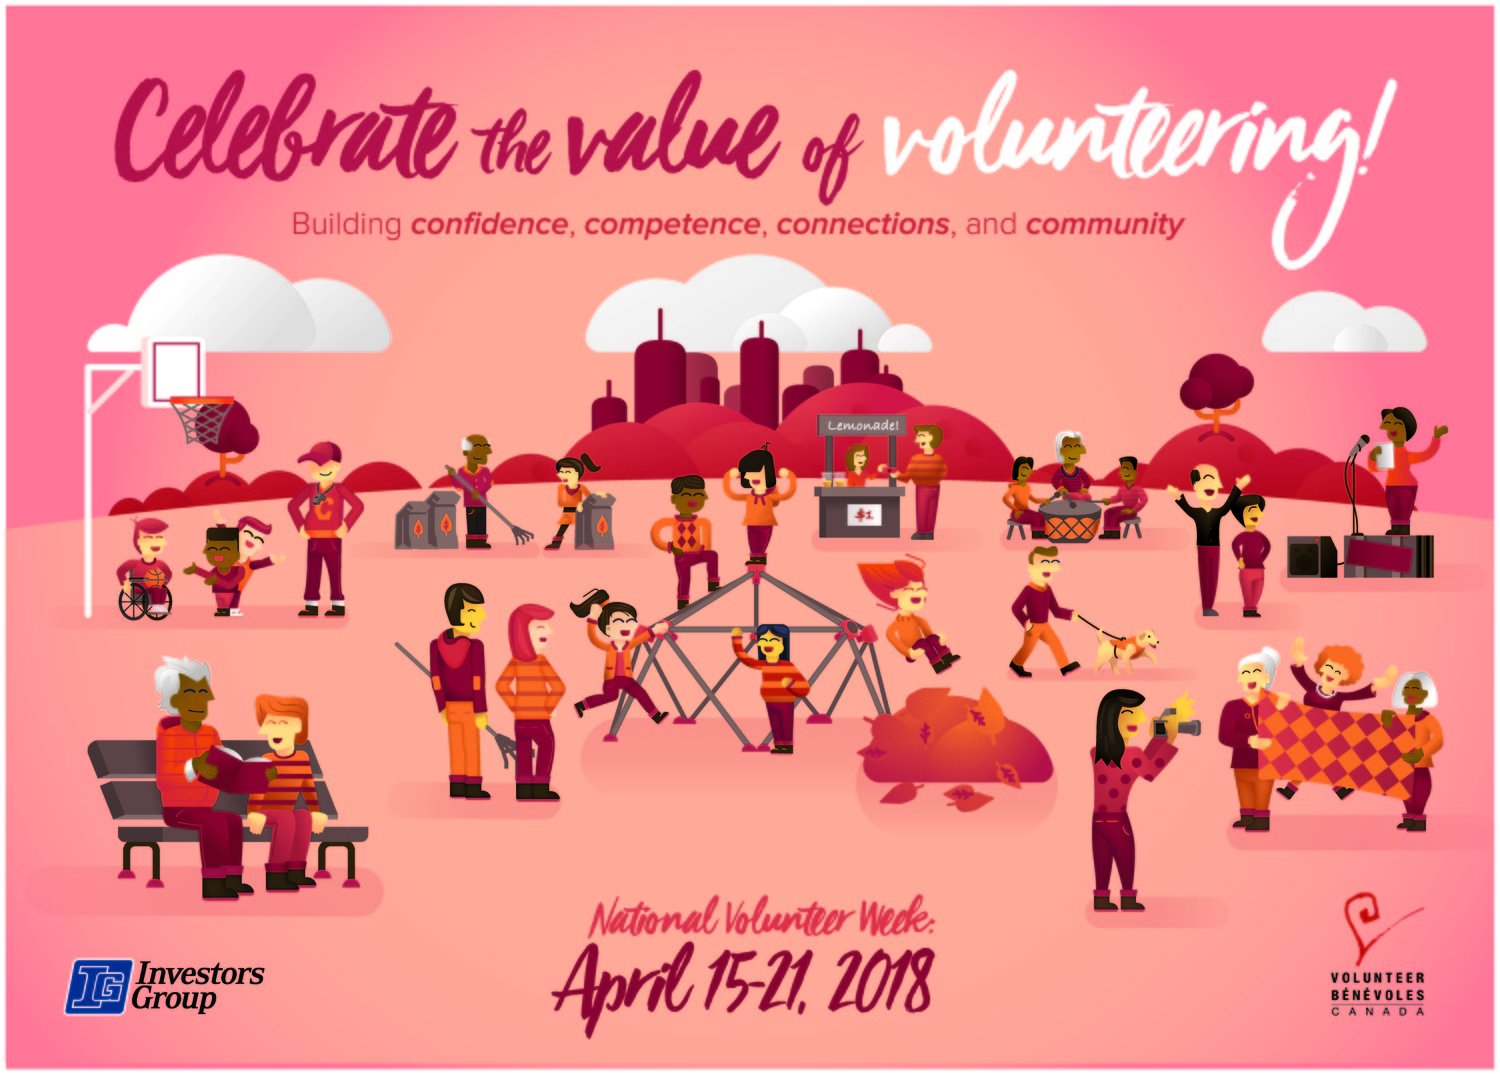 For National Volunteer Week this year, we provided our volunteers with thank you cards and letters and recognized them on the electronic sign outside our office. We also gave gift baskets to the volunteer members of the Board of Directors.